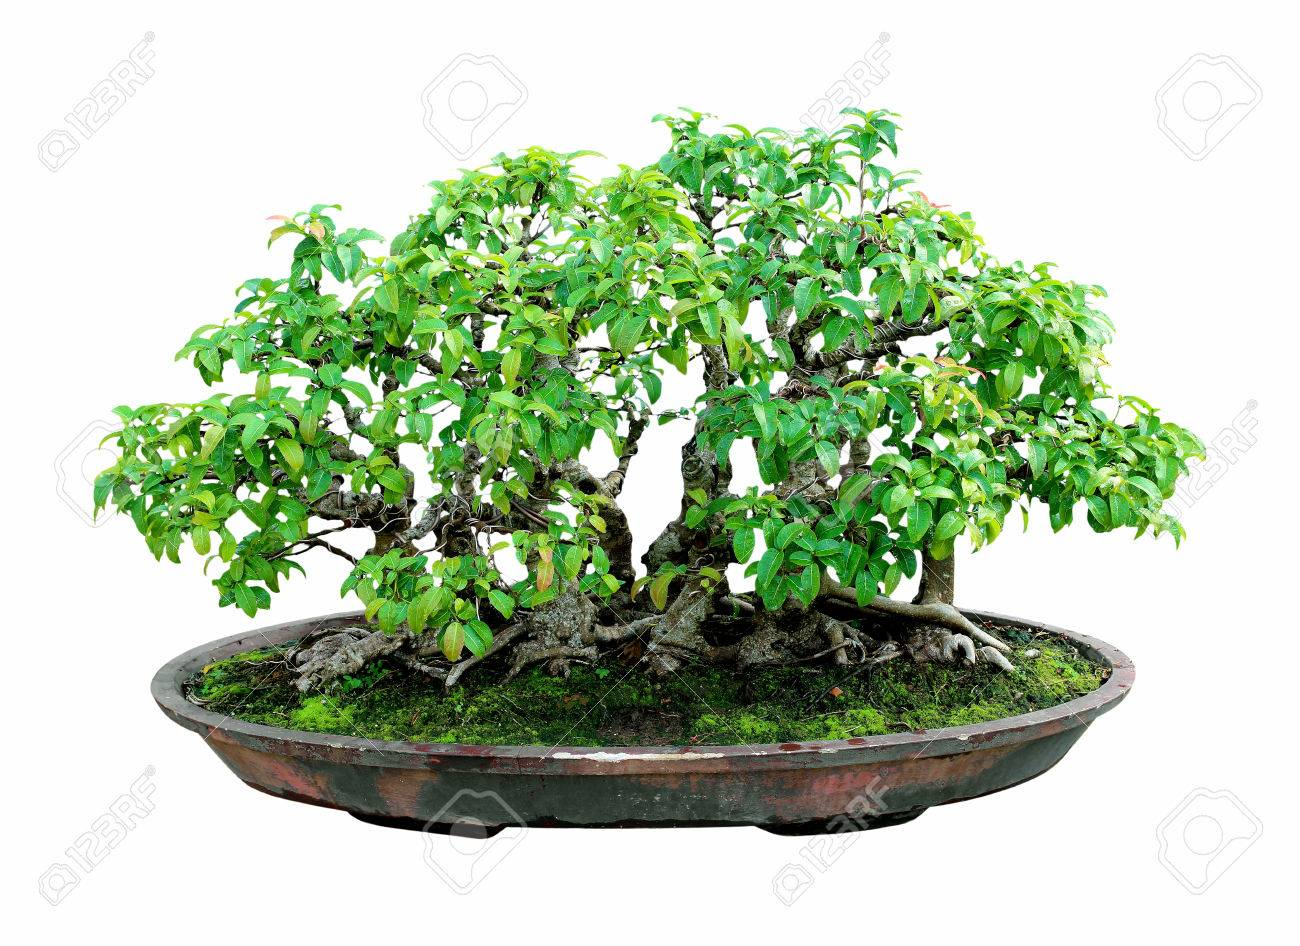 Bonsai Tree With White Backgroundgeneral Decoration In The